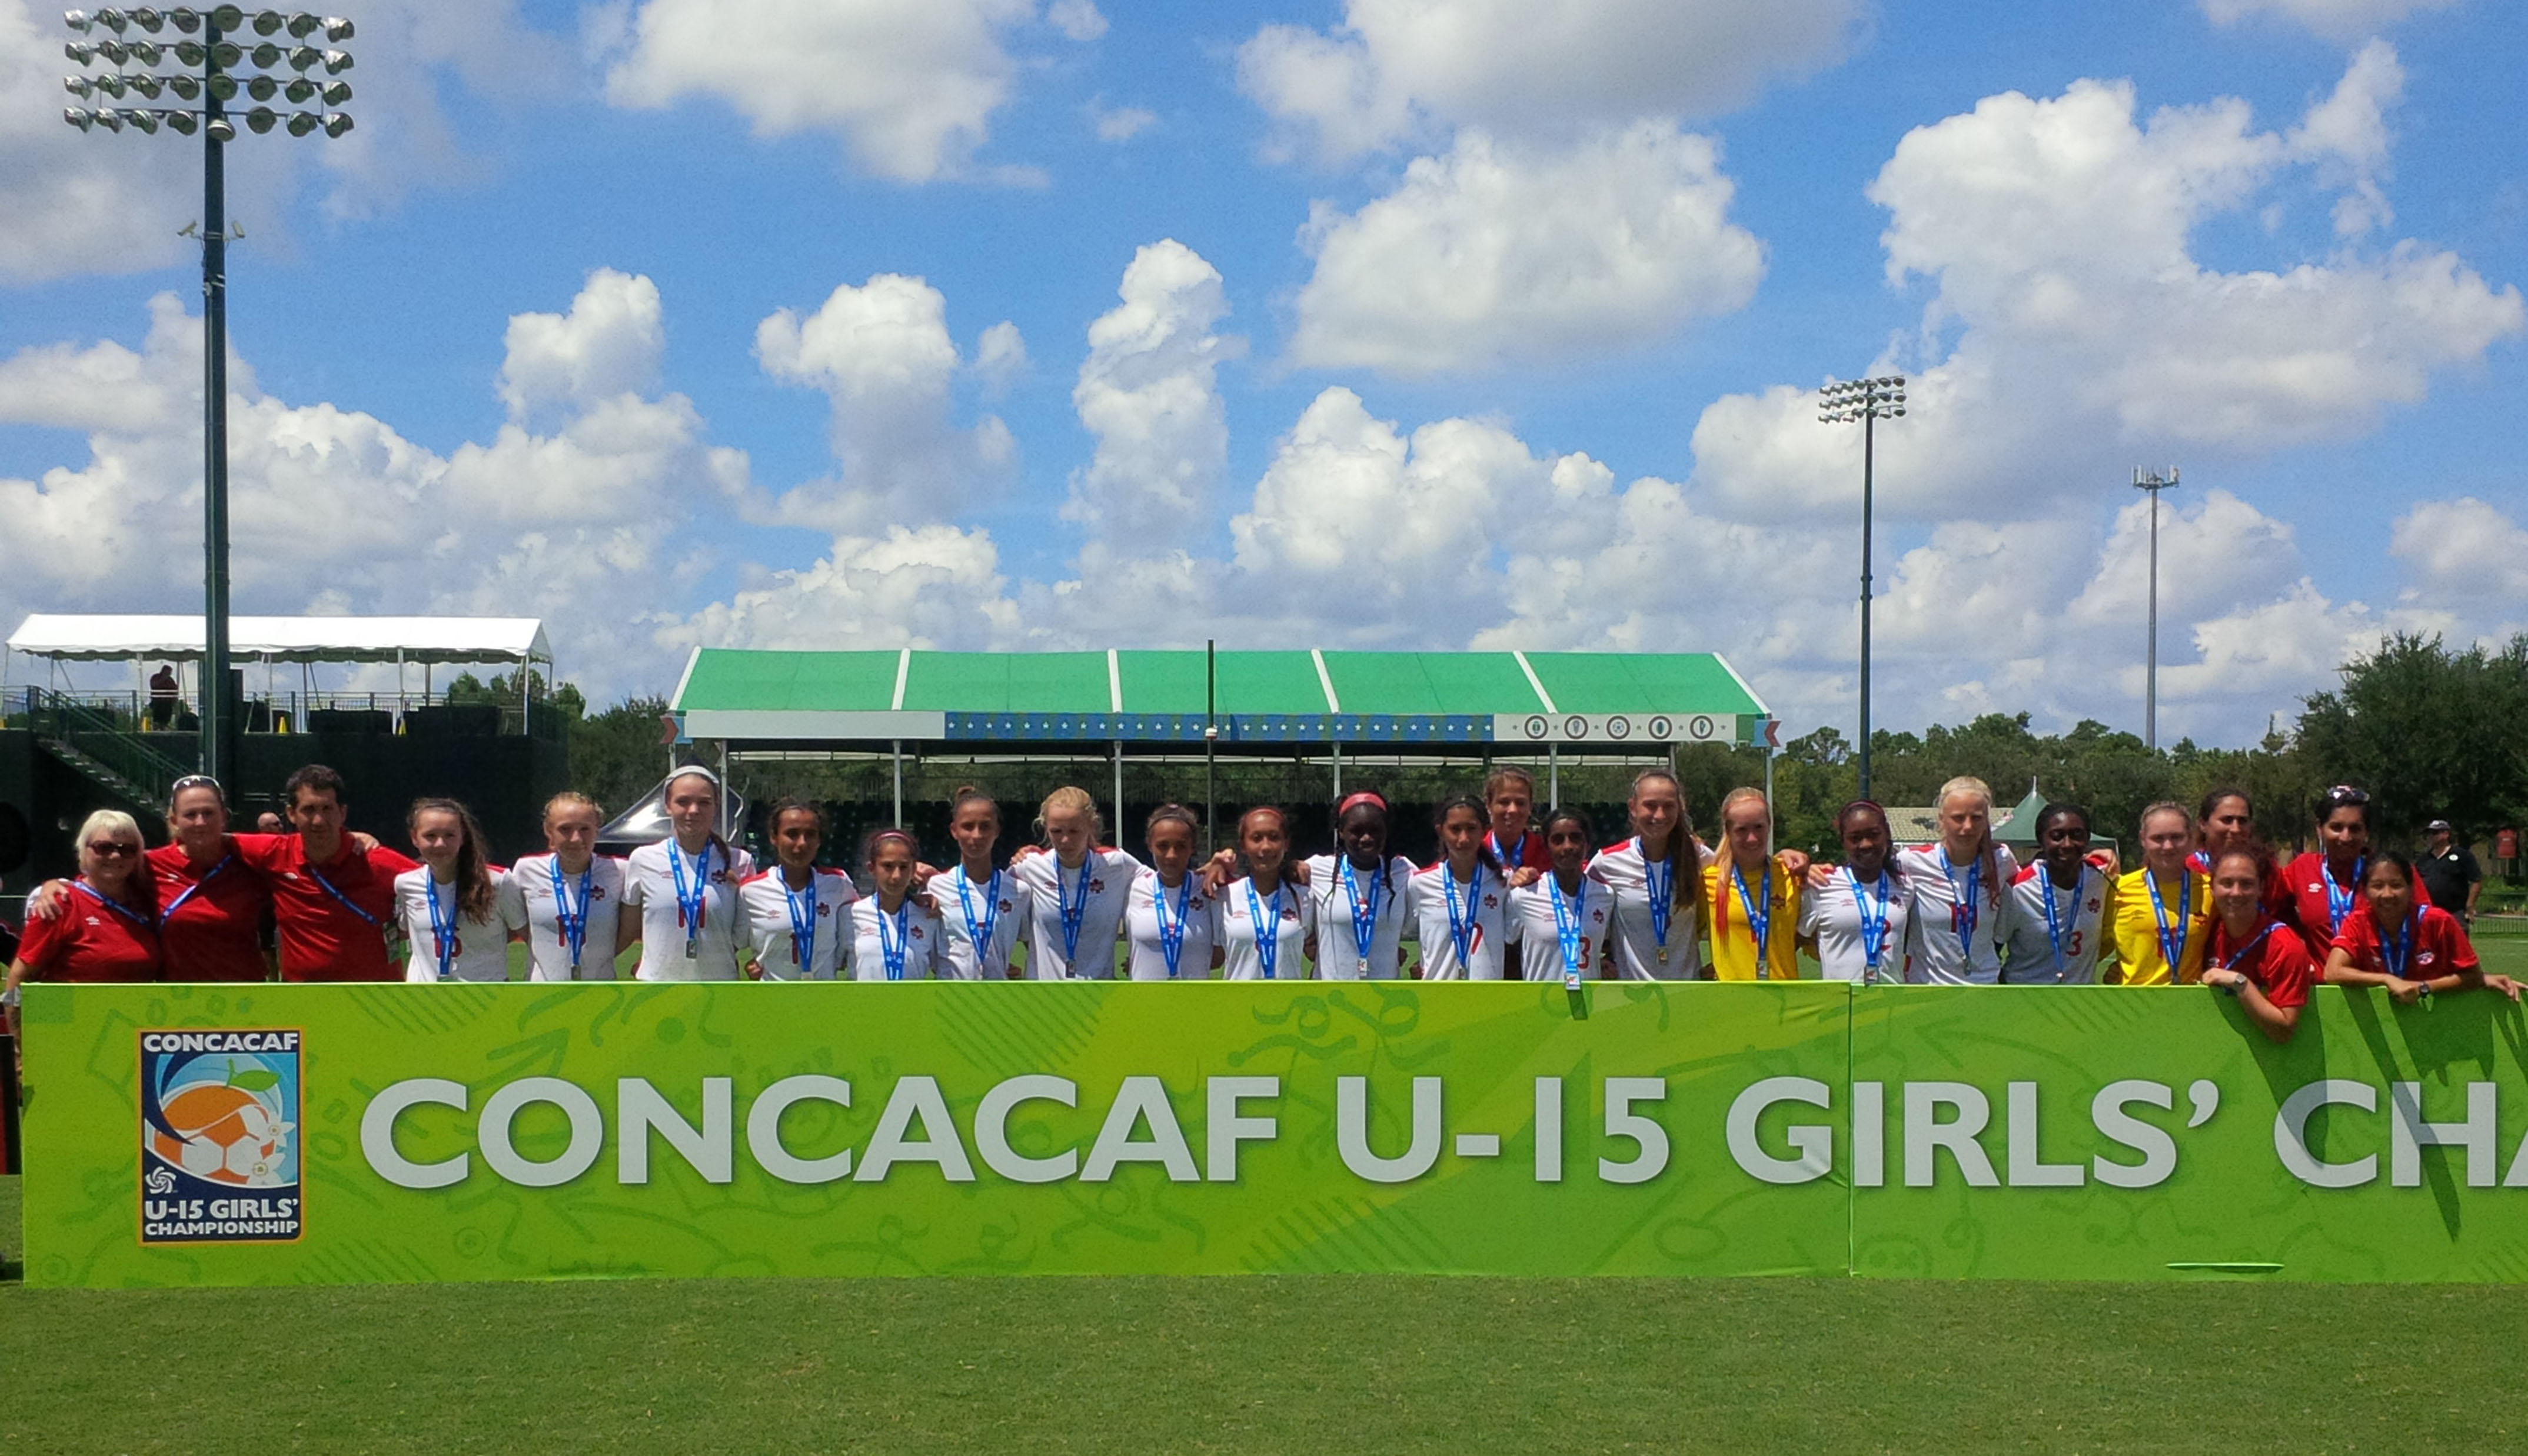 20160821_CONCACAF_canw15_board